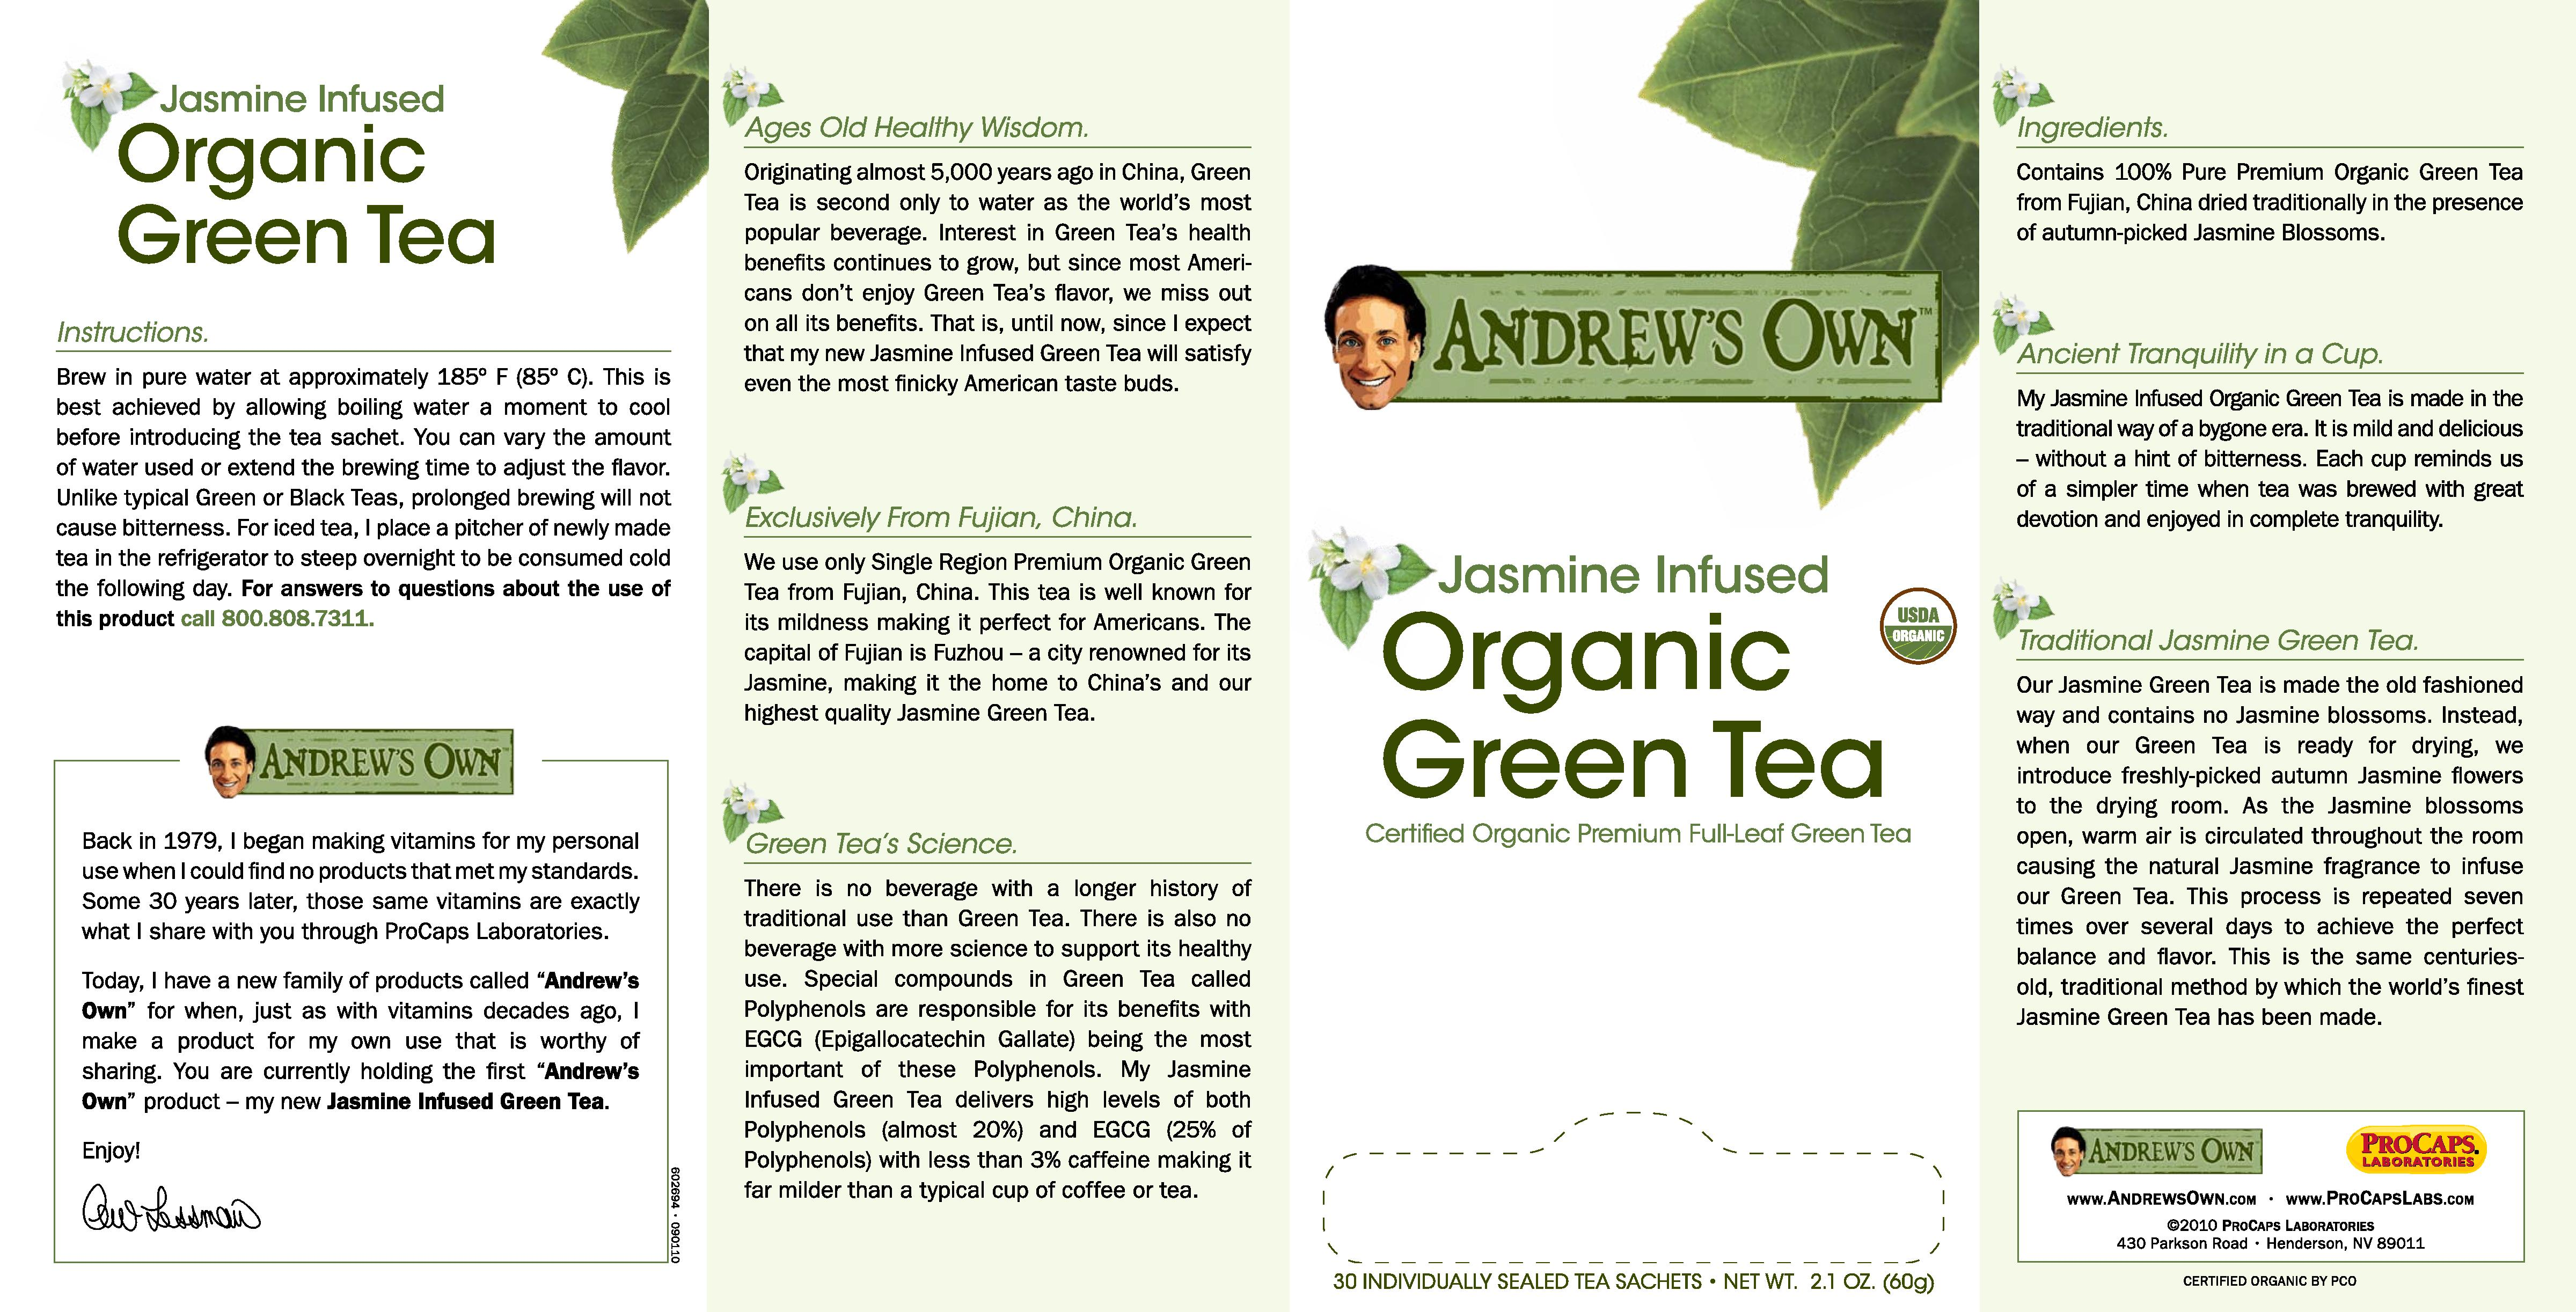 Andrew's Own Jasmine Infused Organic Green Tea at HSN.